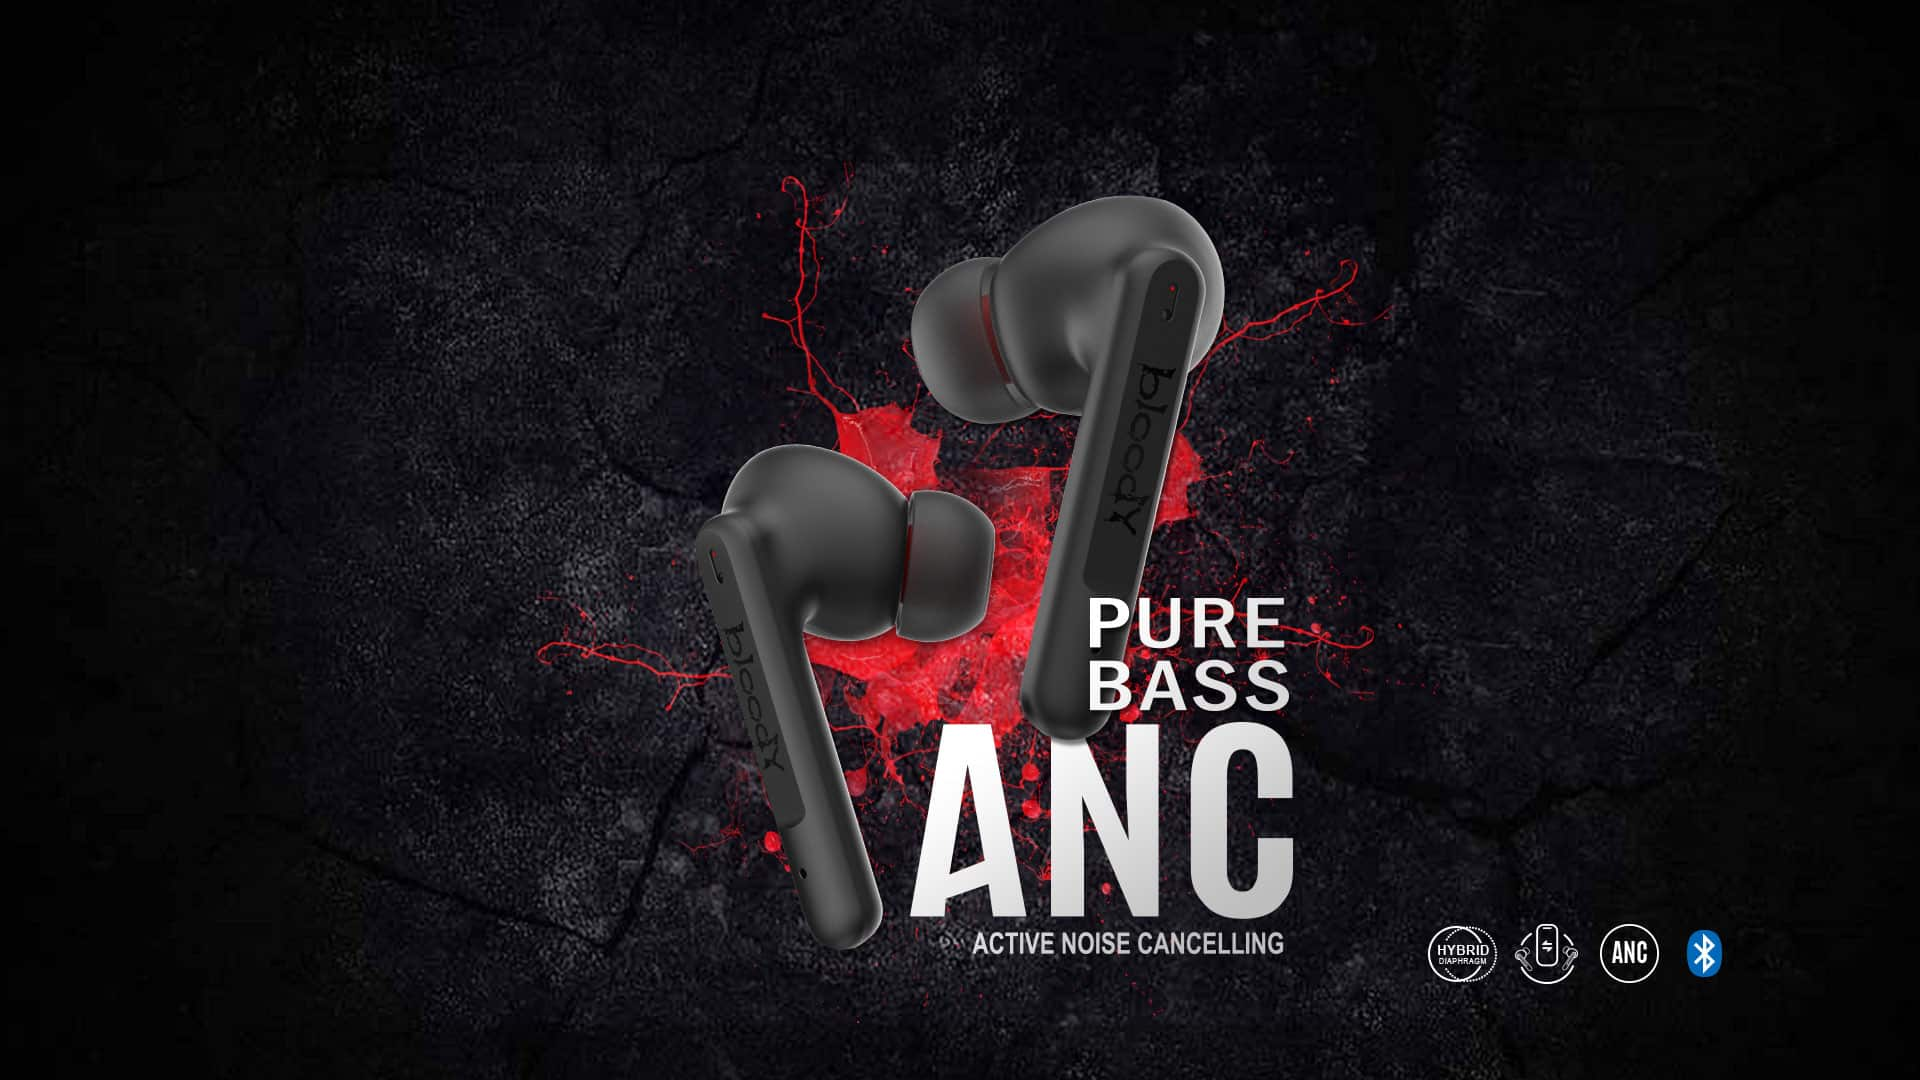 Bloody Gaming ANC earbuds